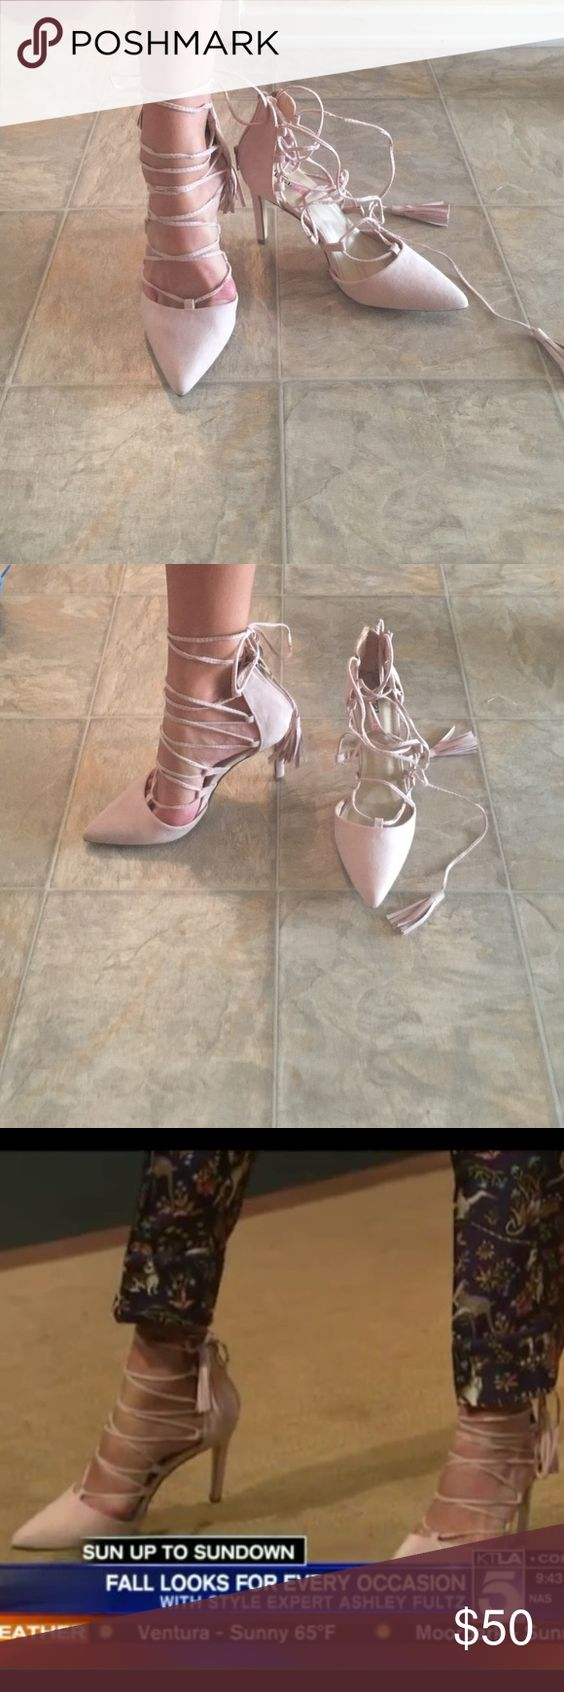 Nude JustFab Heels Nude suede lace up JustFab high heels. Size 6.5. Zips up in the back. Only worn once. Perfect condition. No Trades!! JustFab Shoes Heels